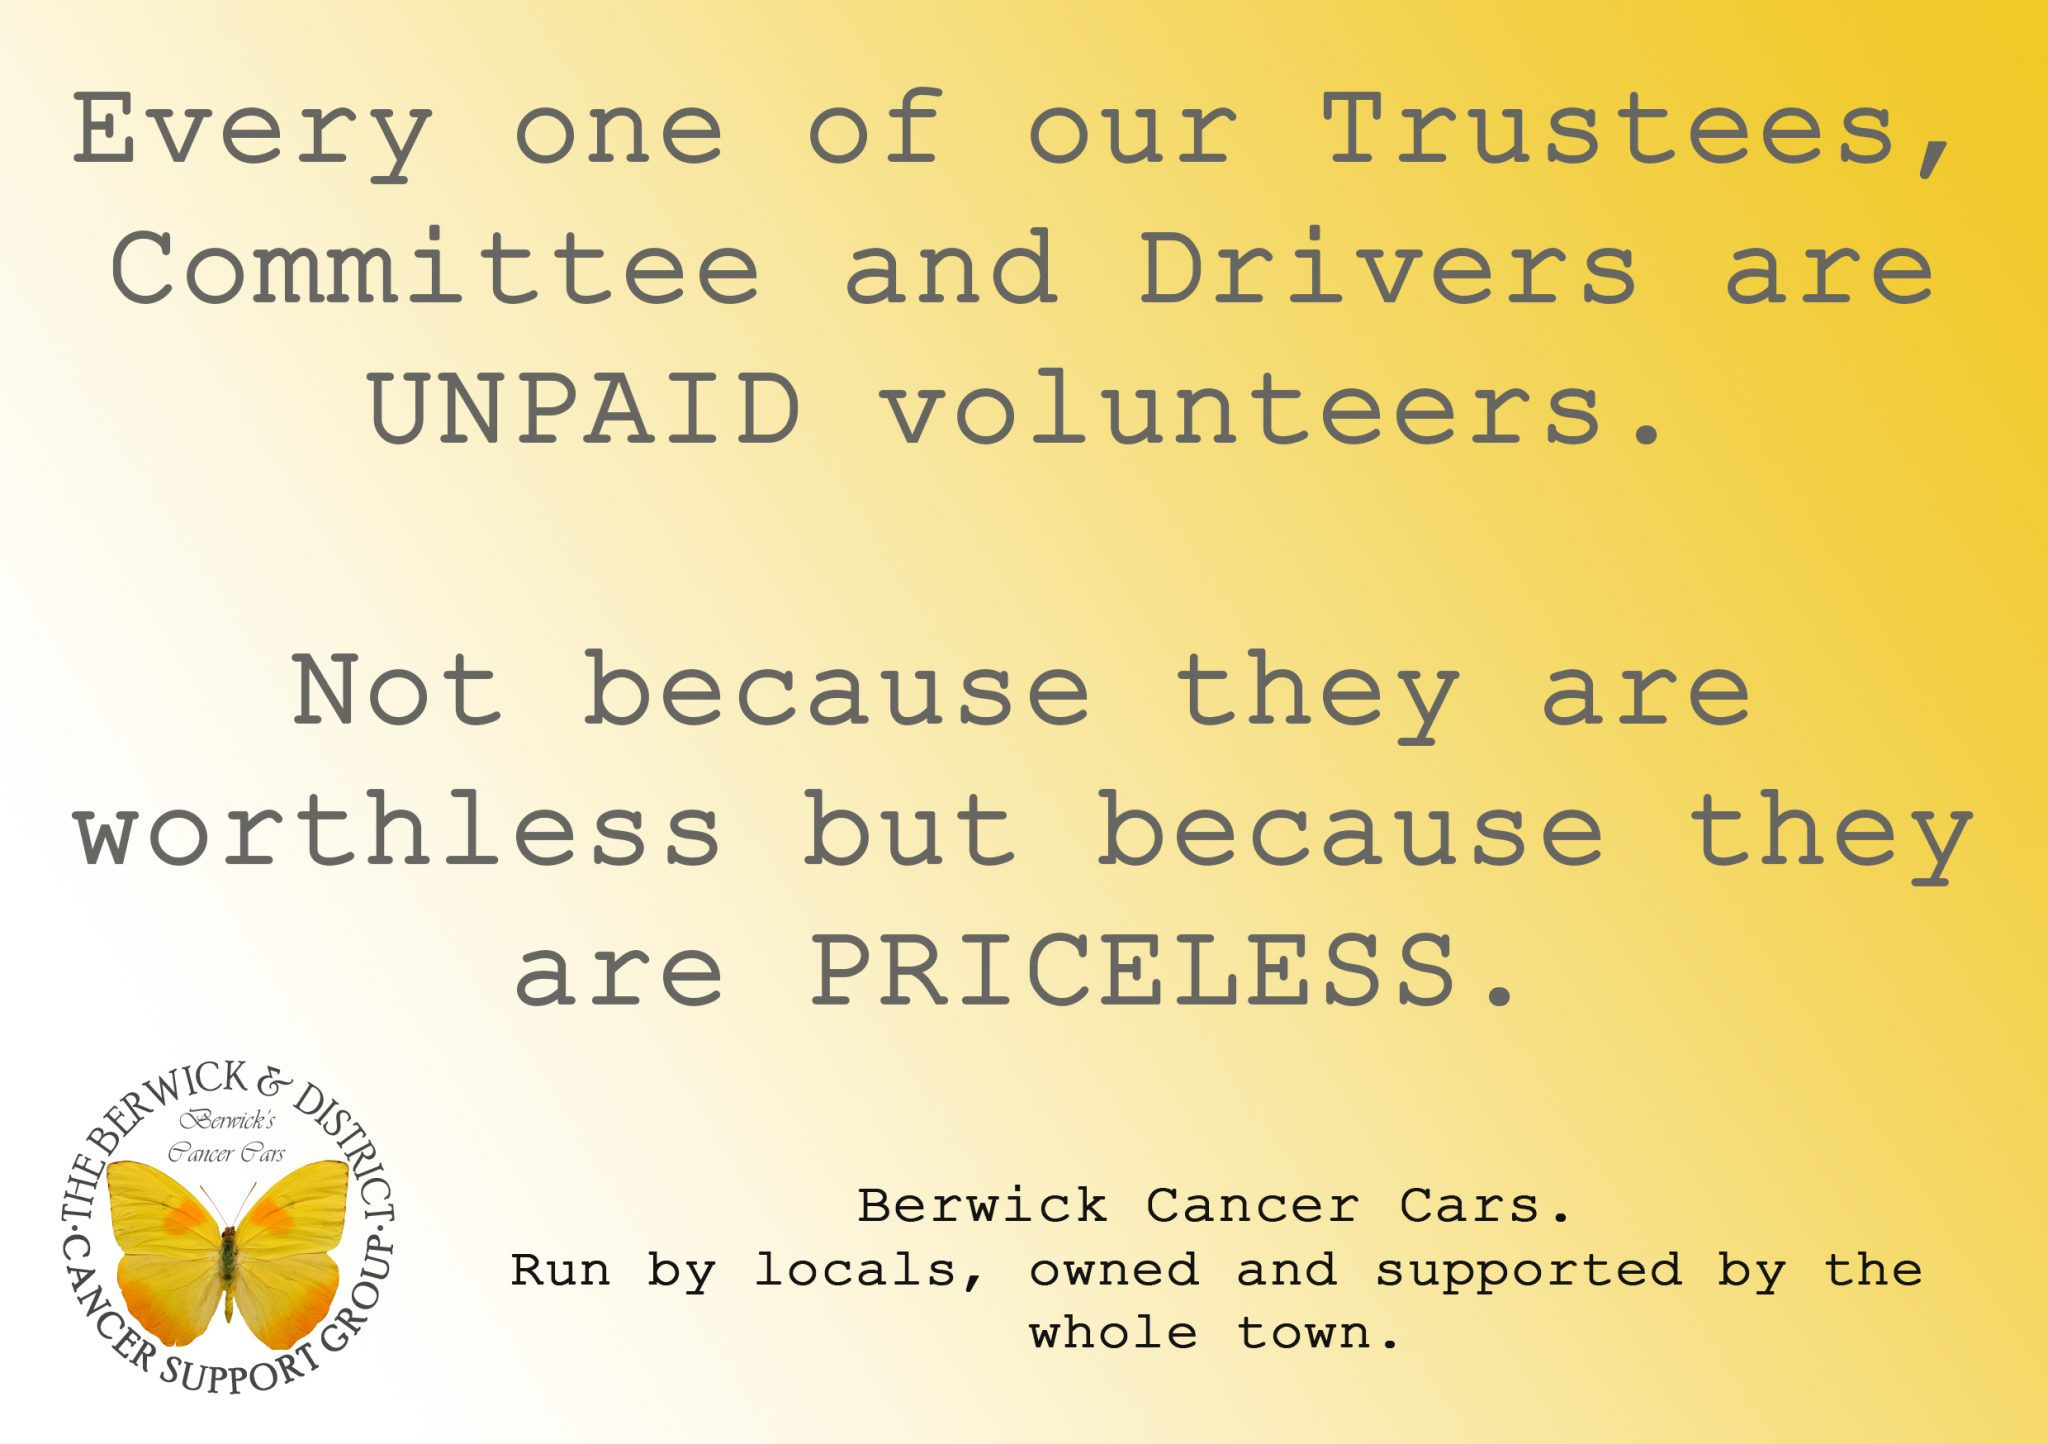 Berwick Cancer Cars - Free, exclusive cancer care transport.